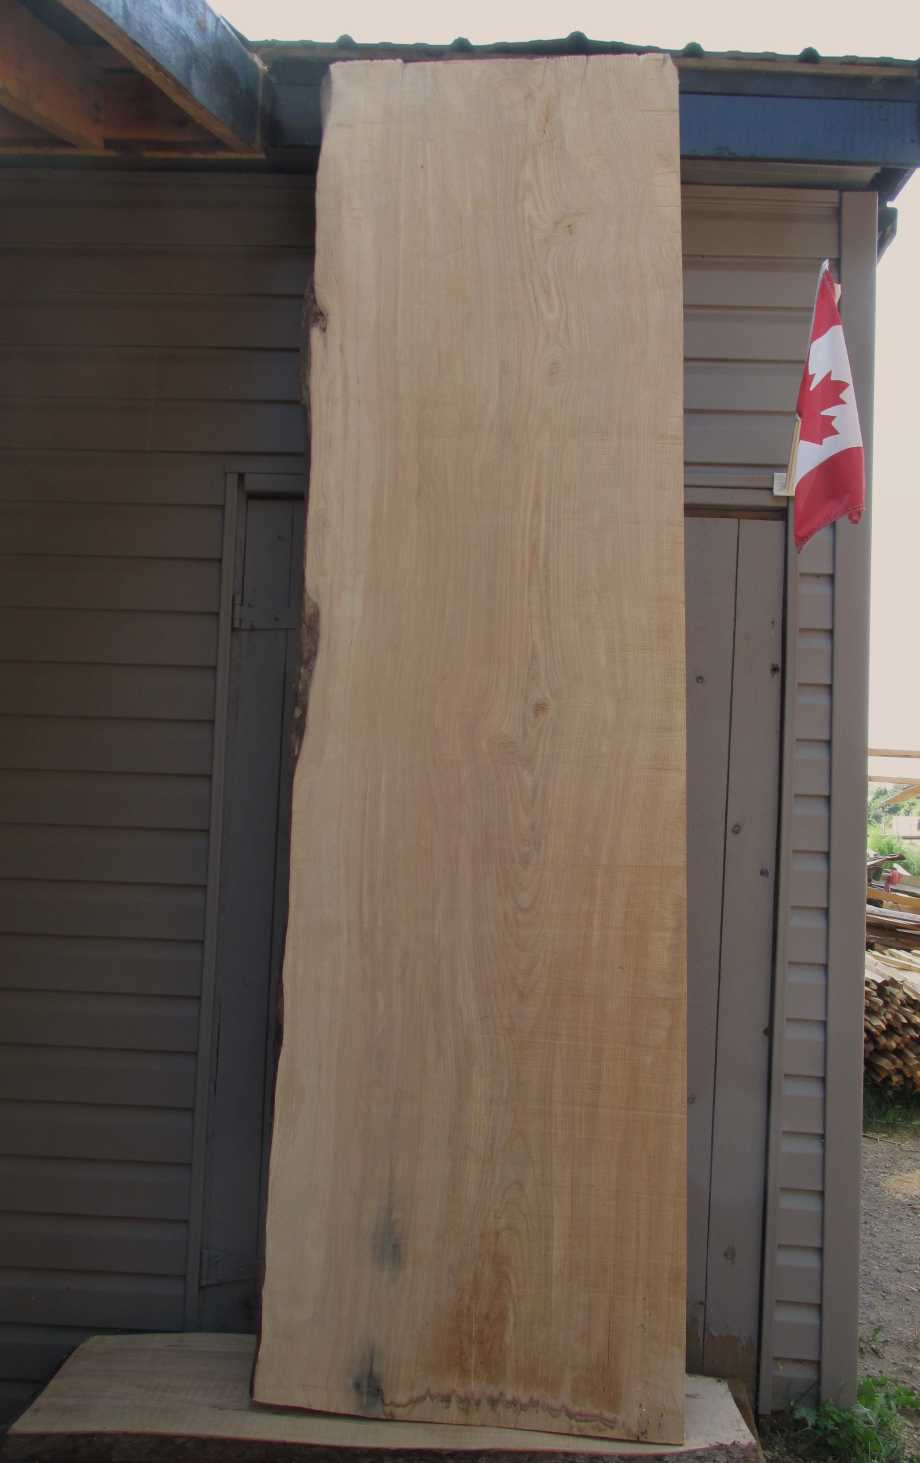 Main image - Ash wood live edge slab for sale 28 wide by 99 inches long